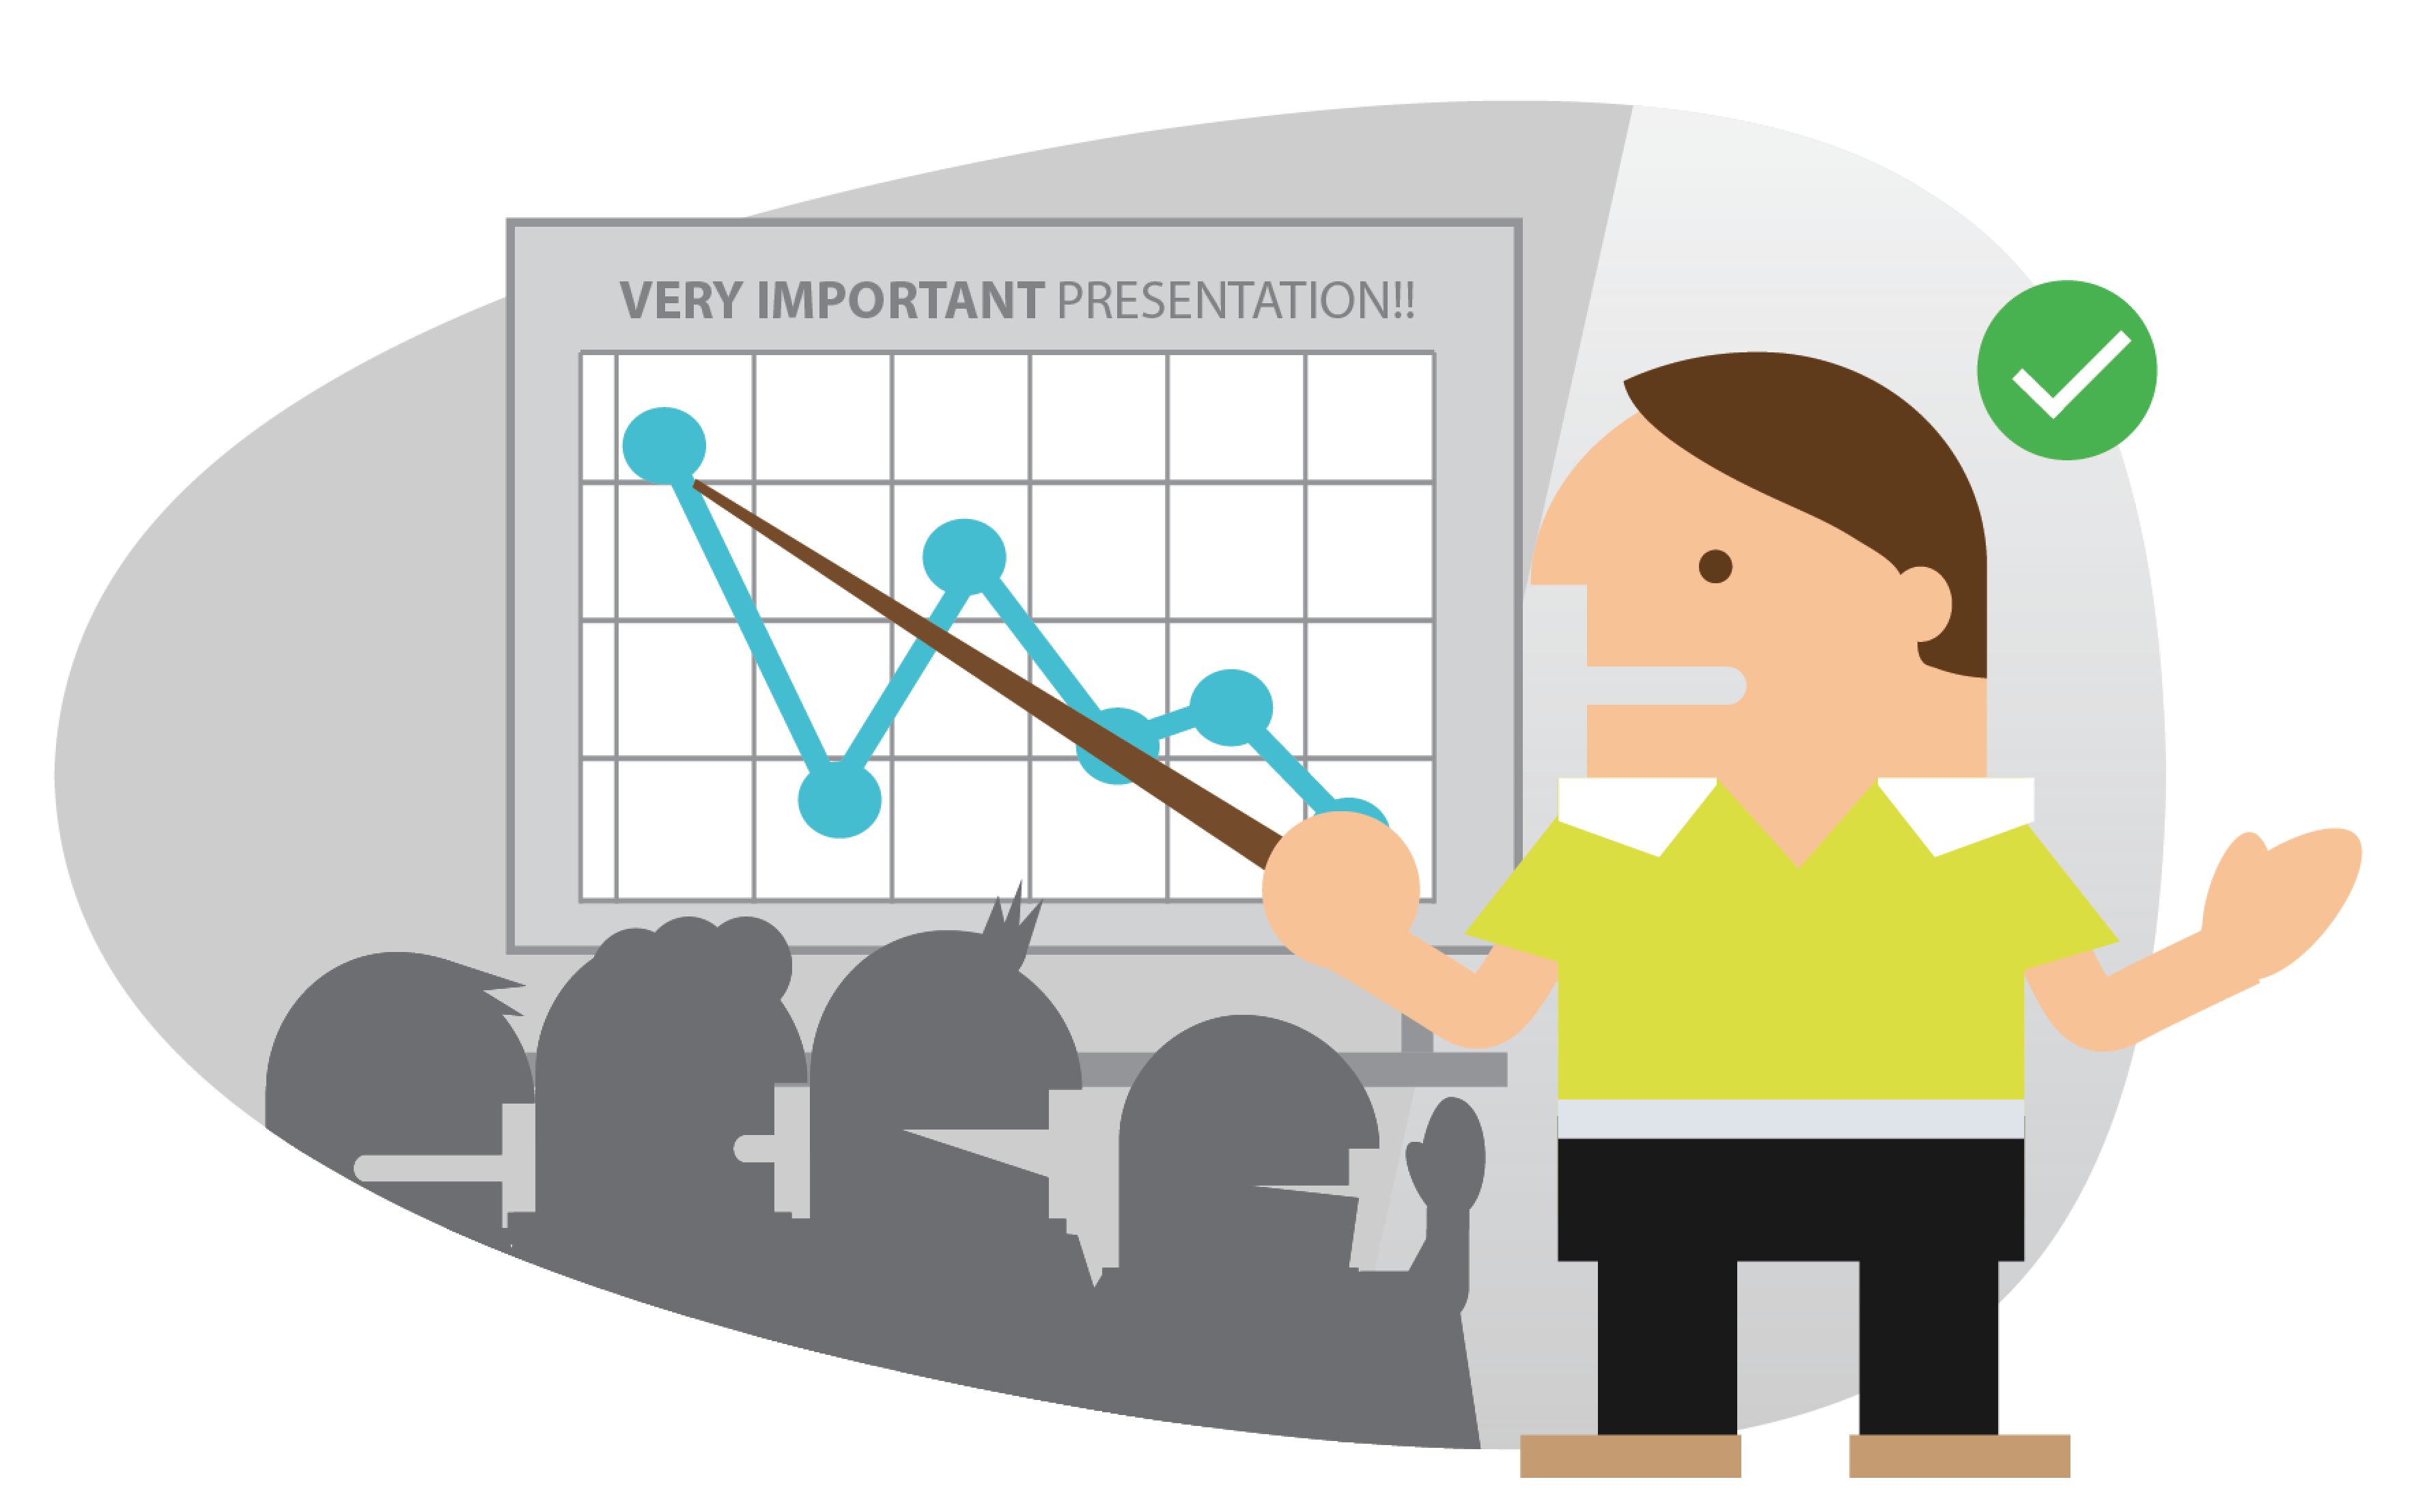 Remain calm to deliver an effective presentation